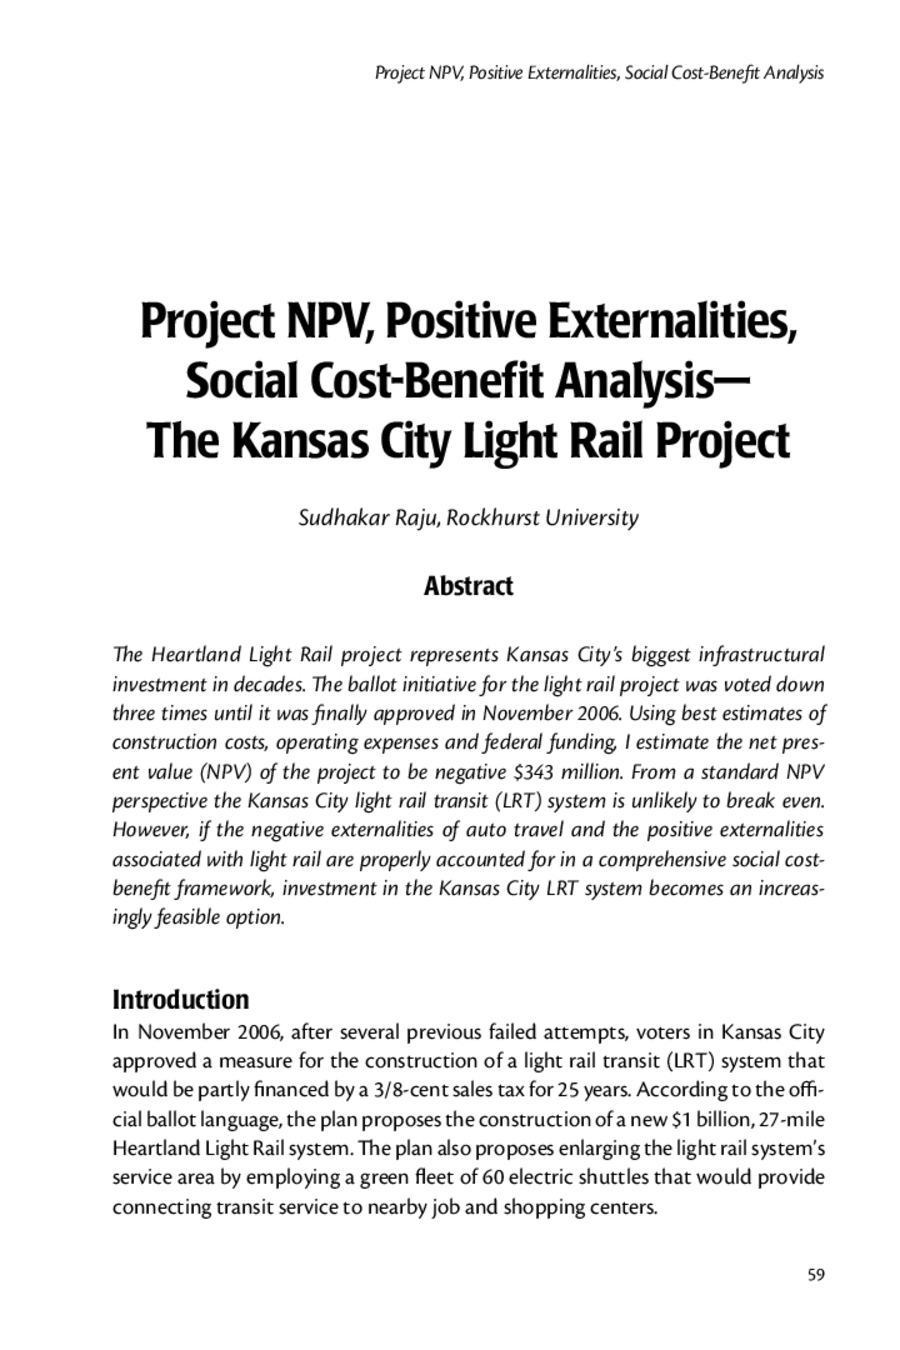 Social Cost Benefit Analysis 01